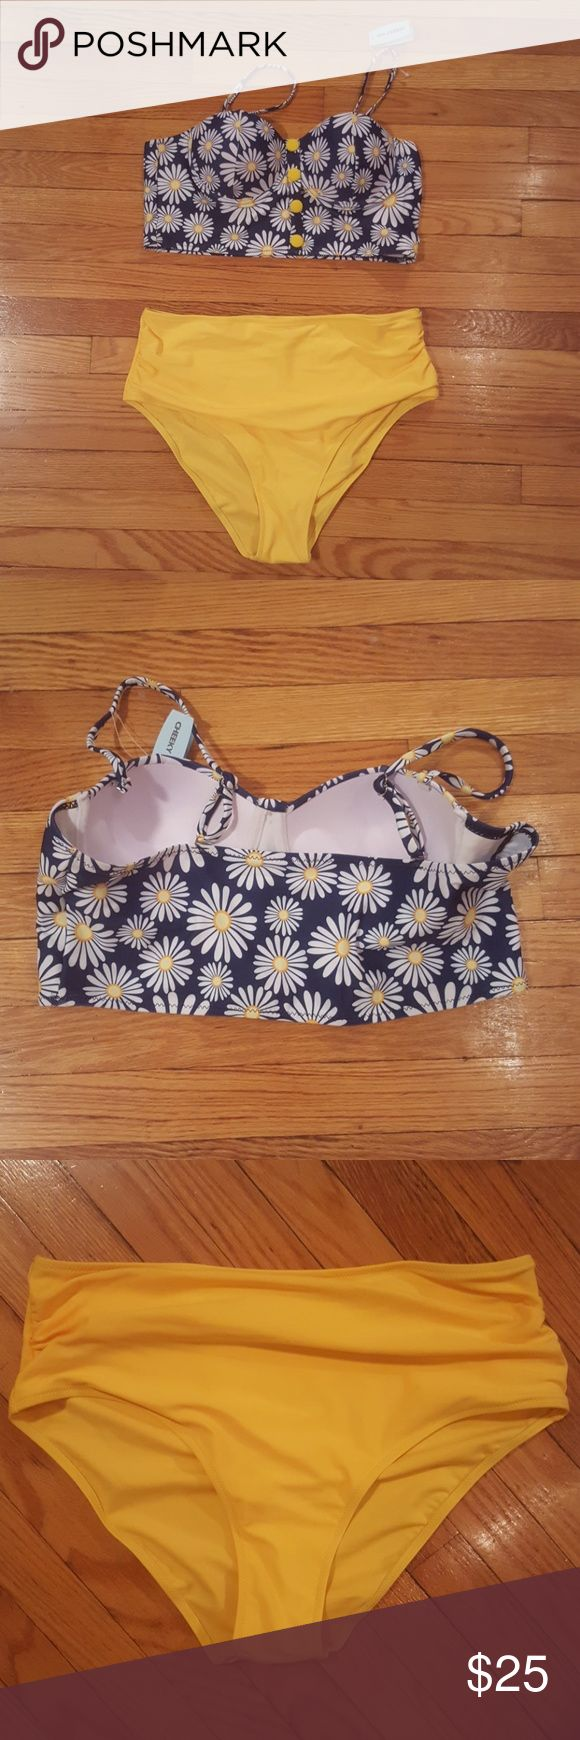 NWT high waist bikini Very cute, never worn bikini just in time for summer! Daisy print on top with shaped cups and yellow high waist bottoms. Swim Bikinis